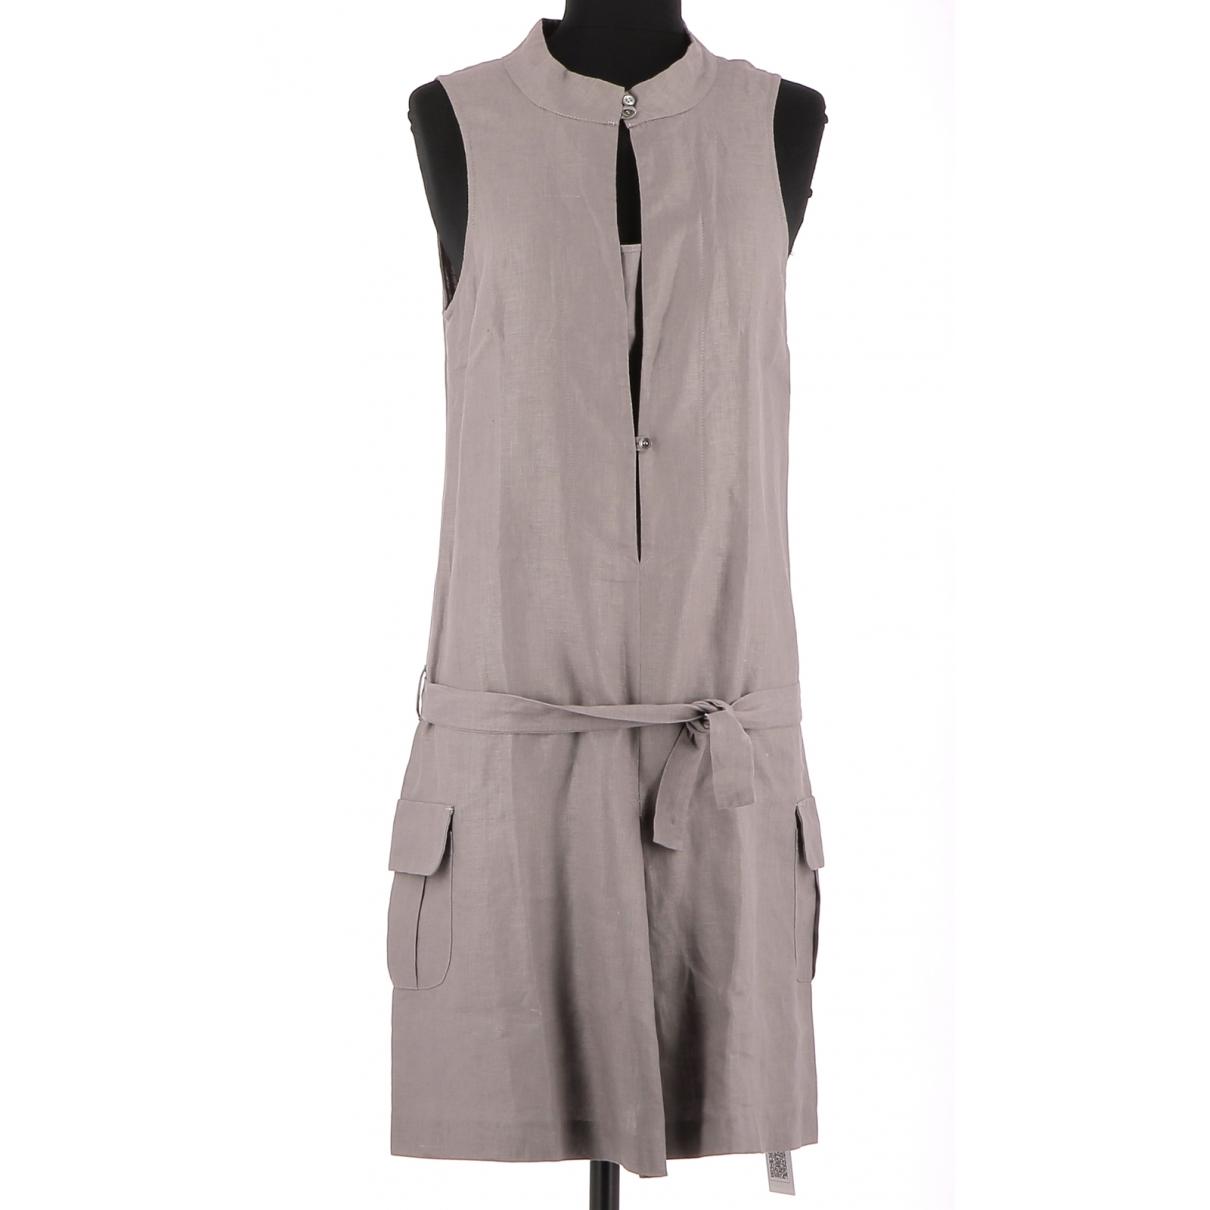 Ikks \N Grey Linen dress for Women 38 FR